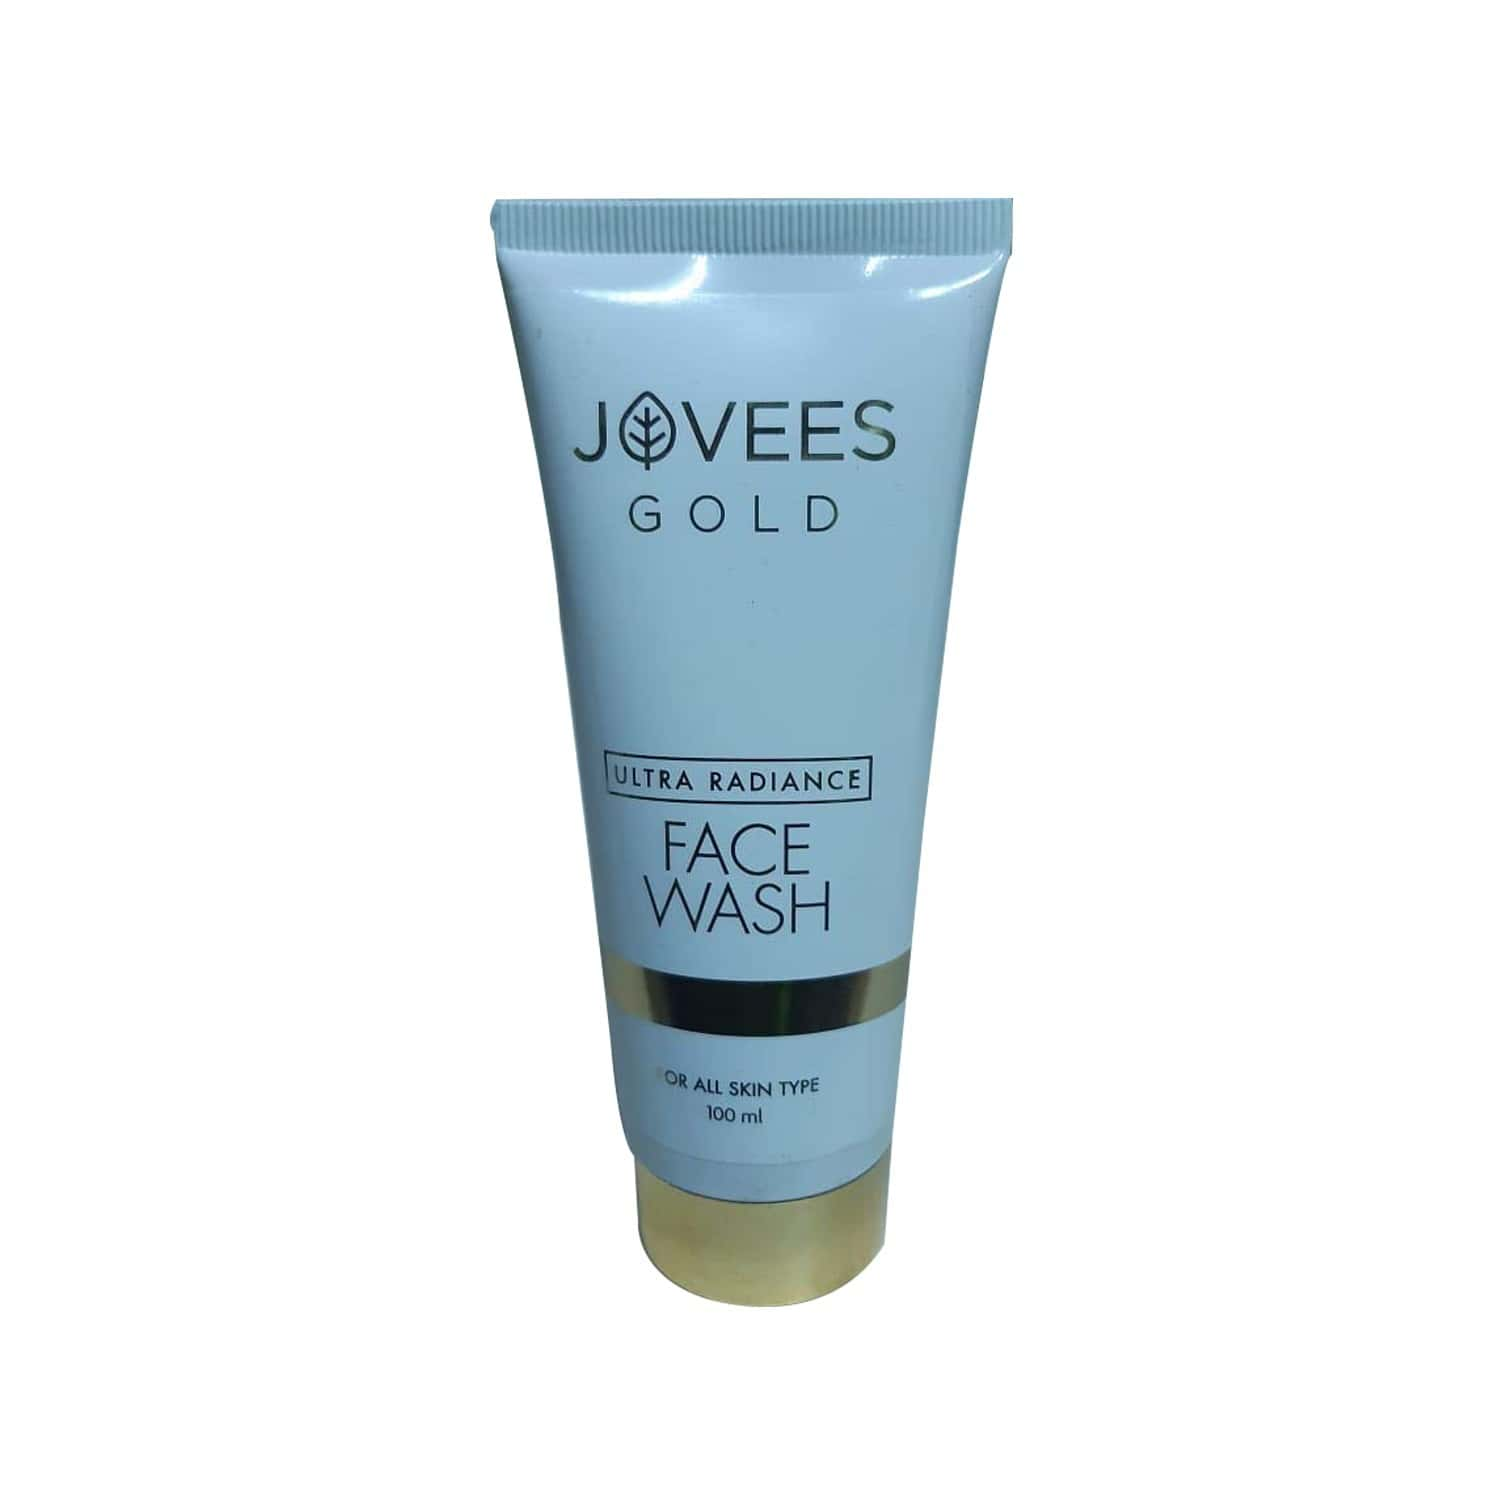 Jovees Ultra Radiance Gold Face Wash - 100 Ml